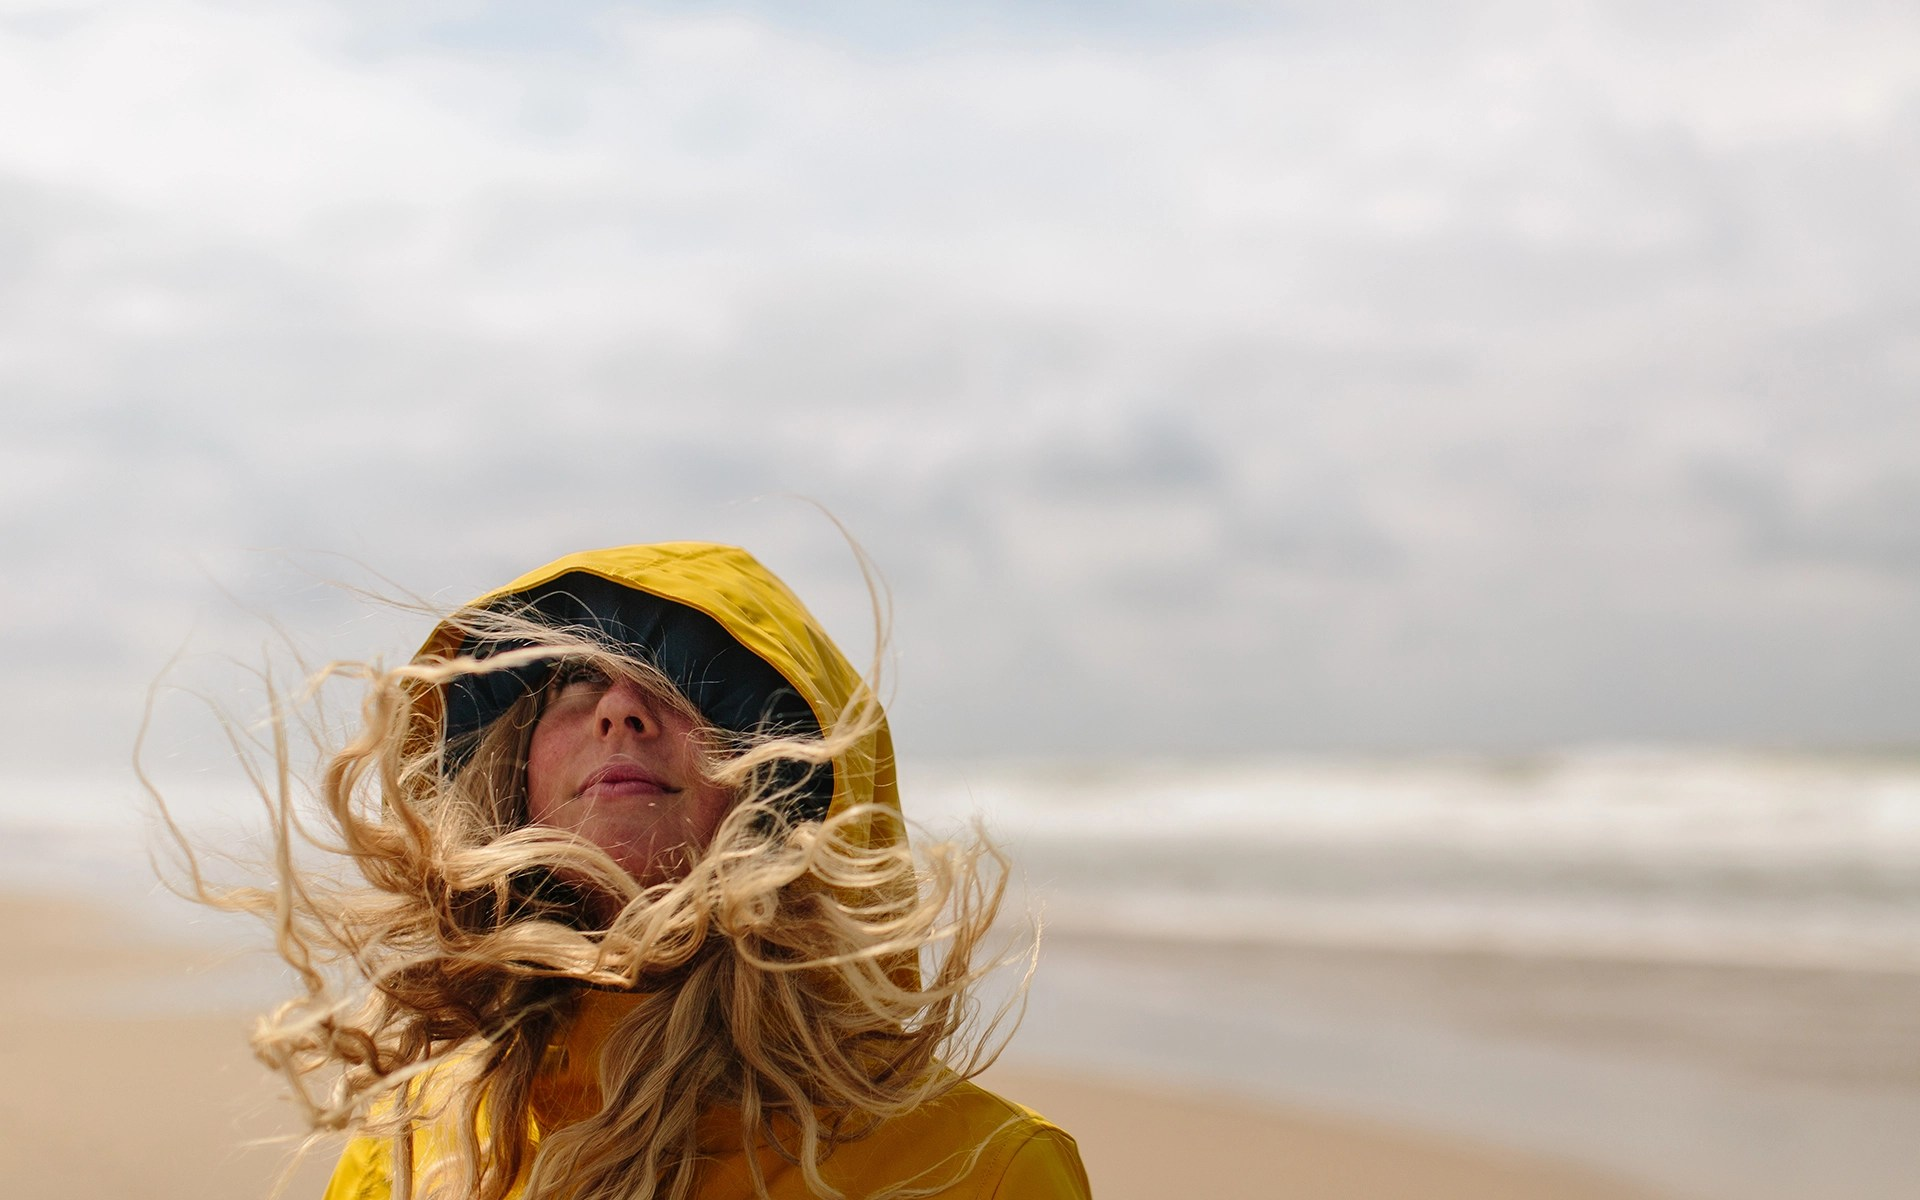 A Blond Woman On A Windy Beach With Her Hair Blowing Everywhere.